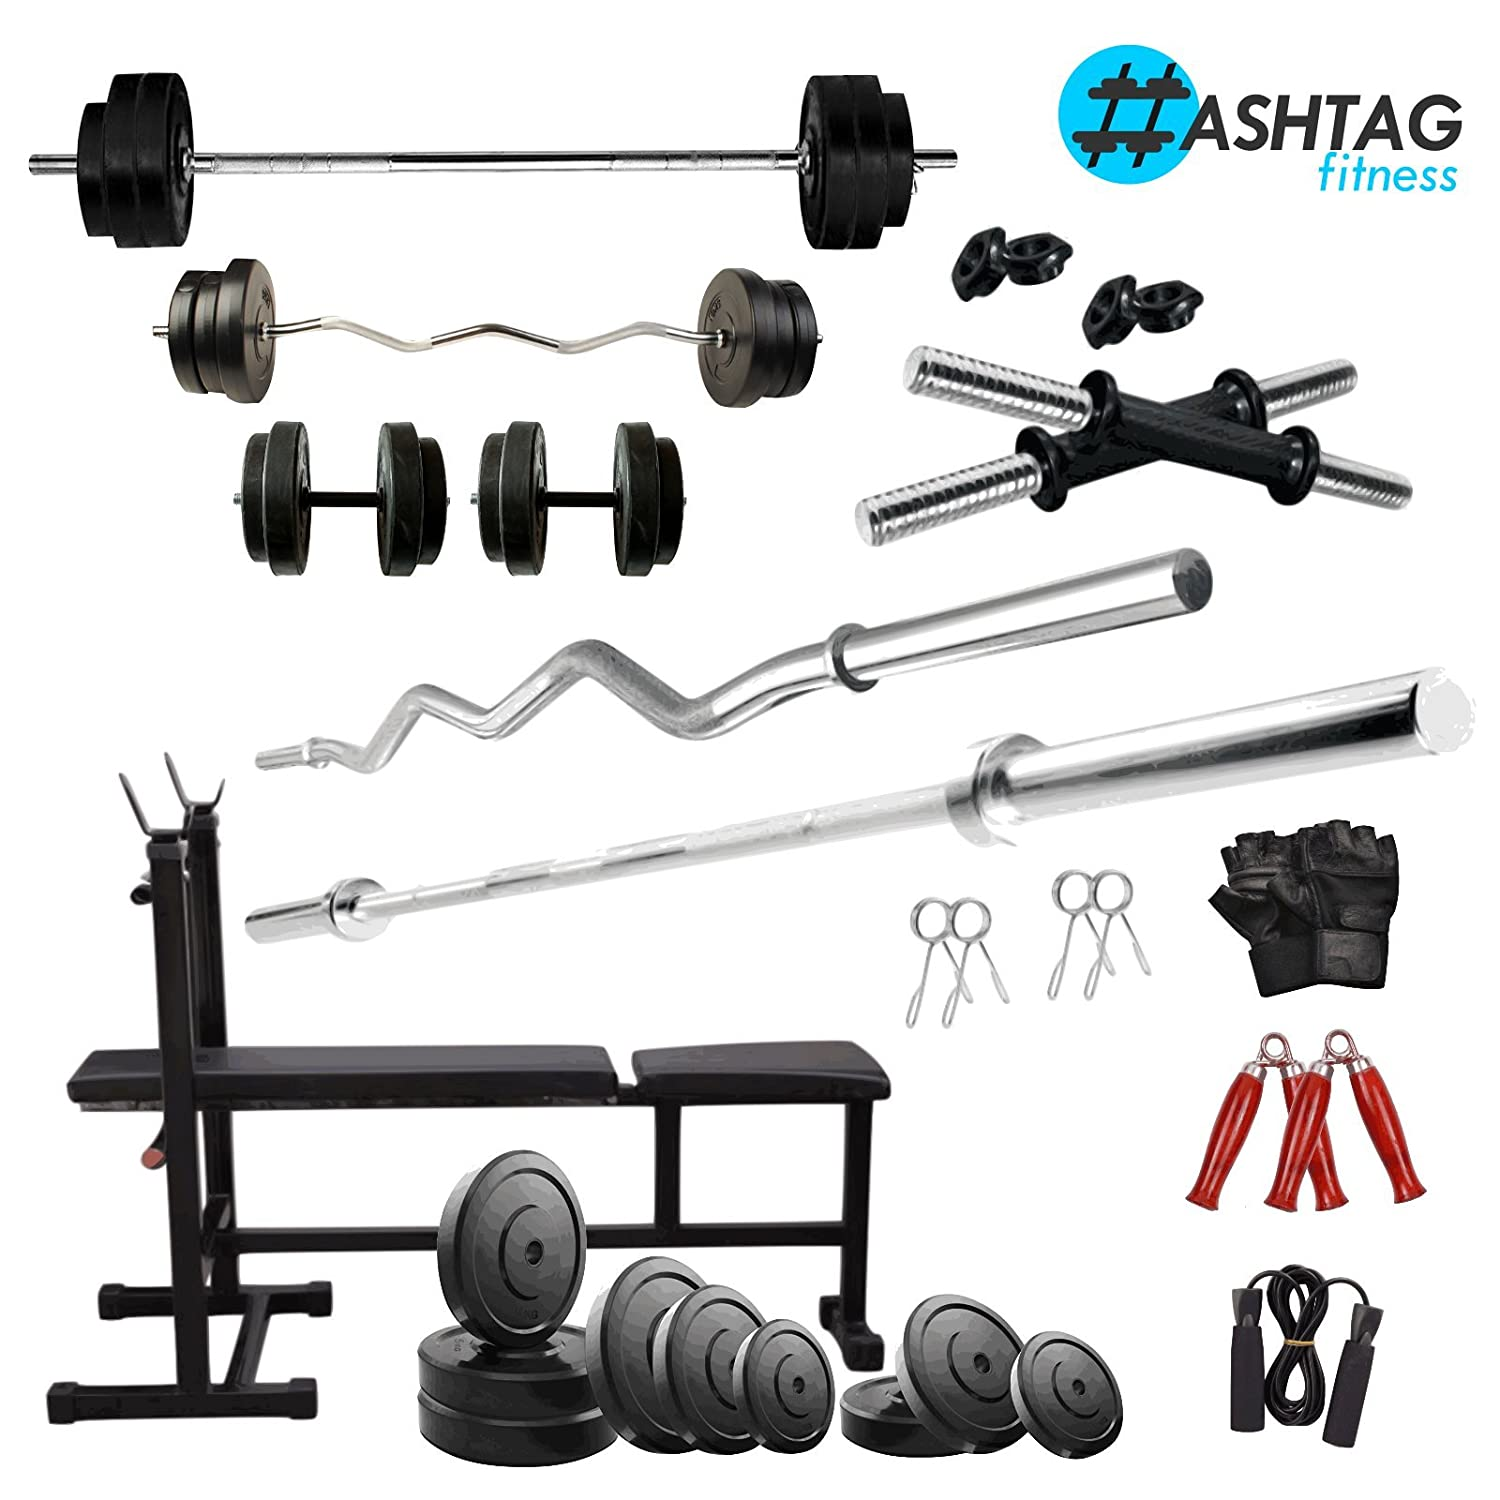 Hashtag kg home gym combo for beginners amazon sports